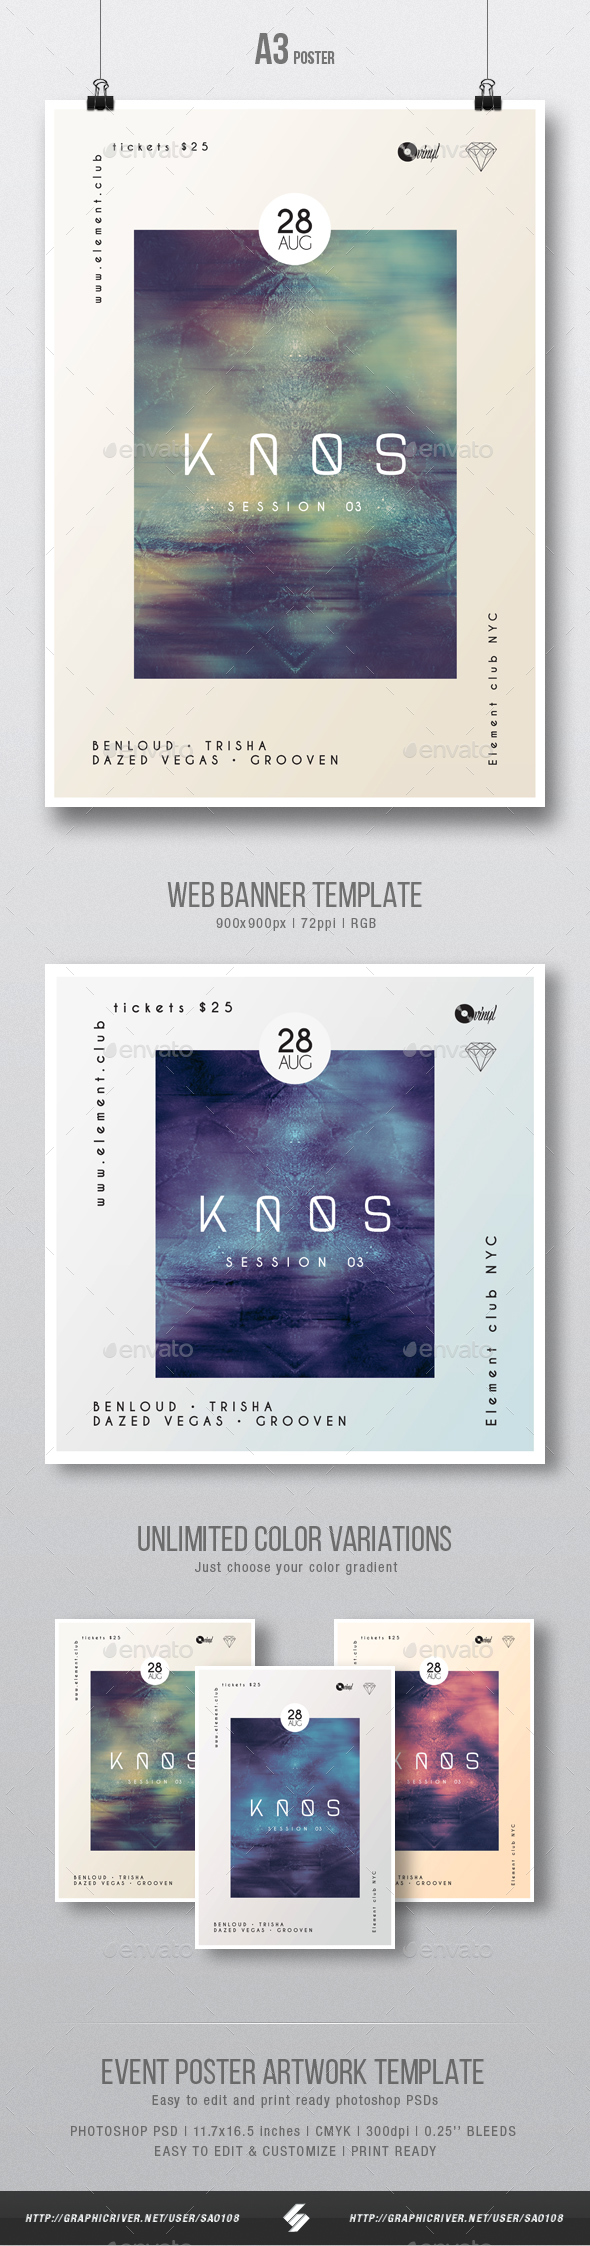 GraphicRiver Kaos 03 Minimal Party Flyer Poster Artwork Template A3 20509226